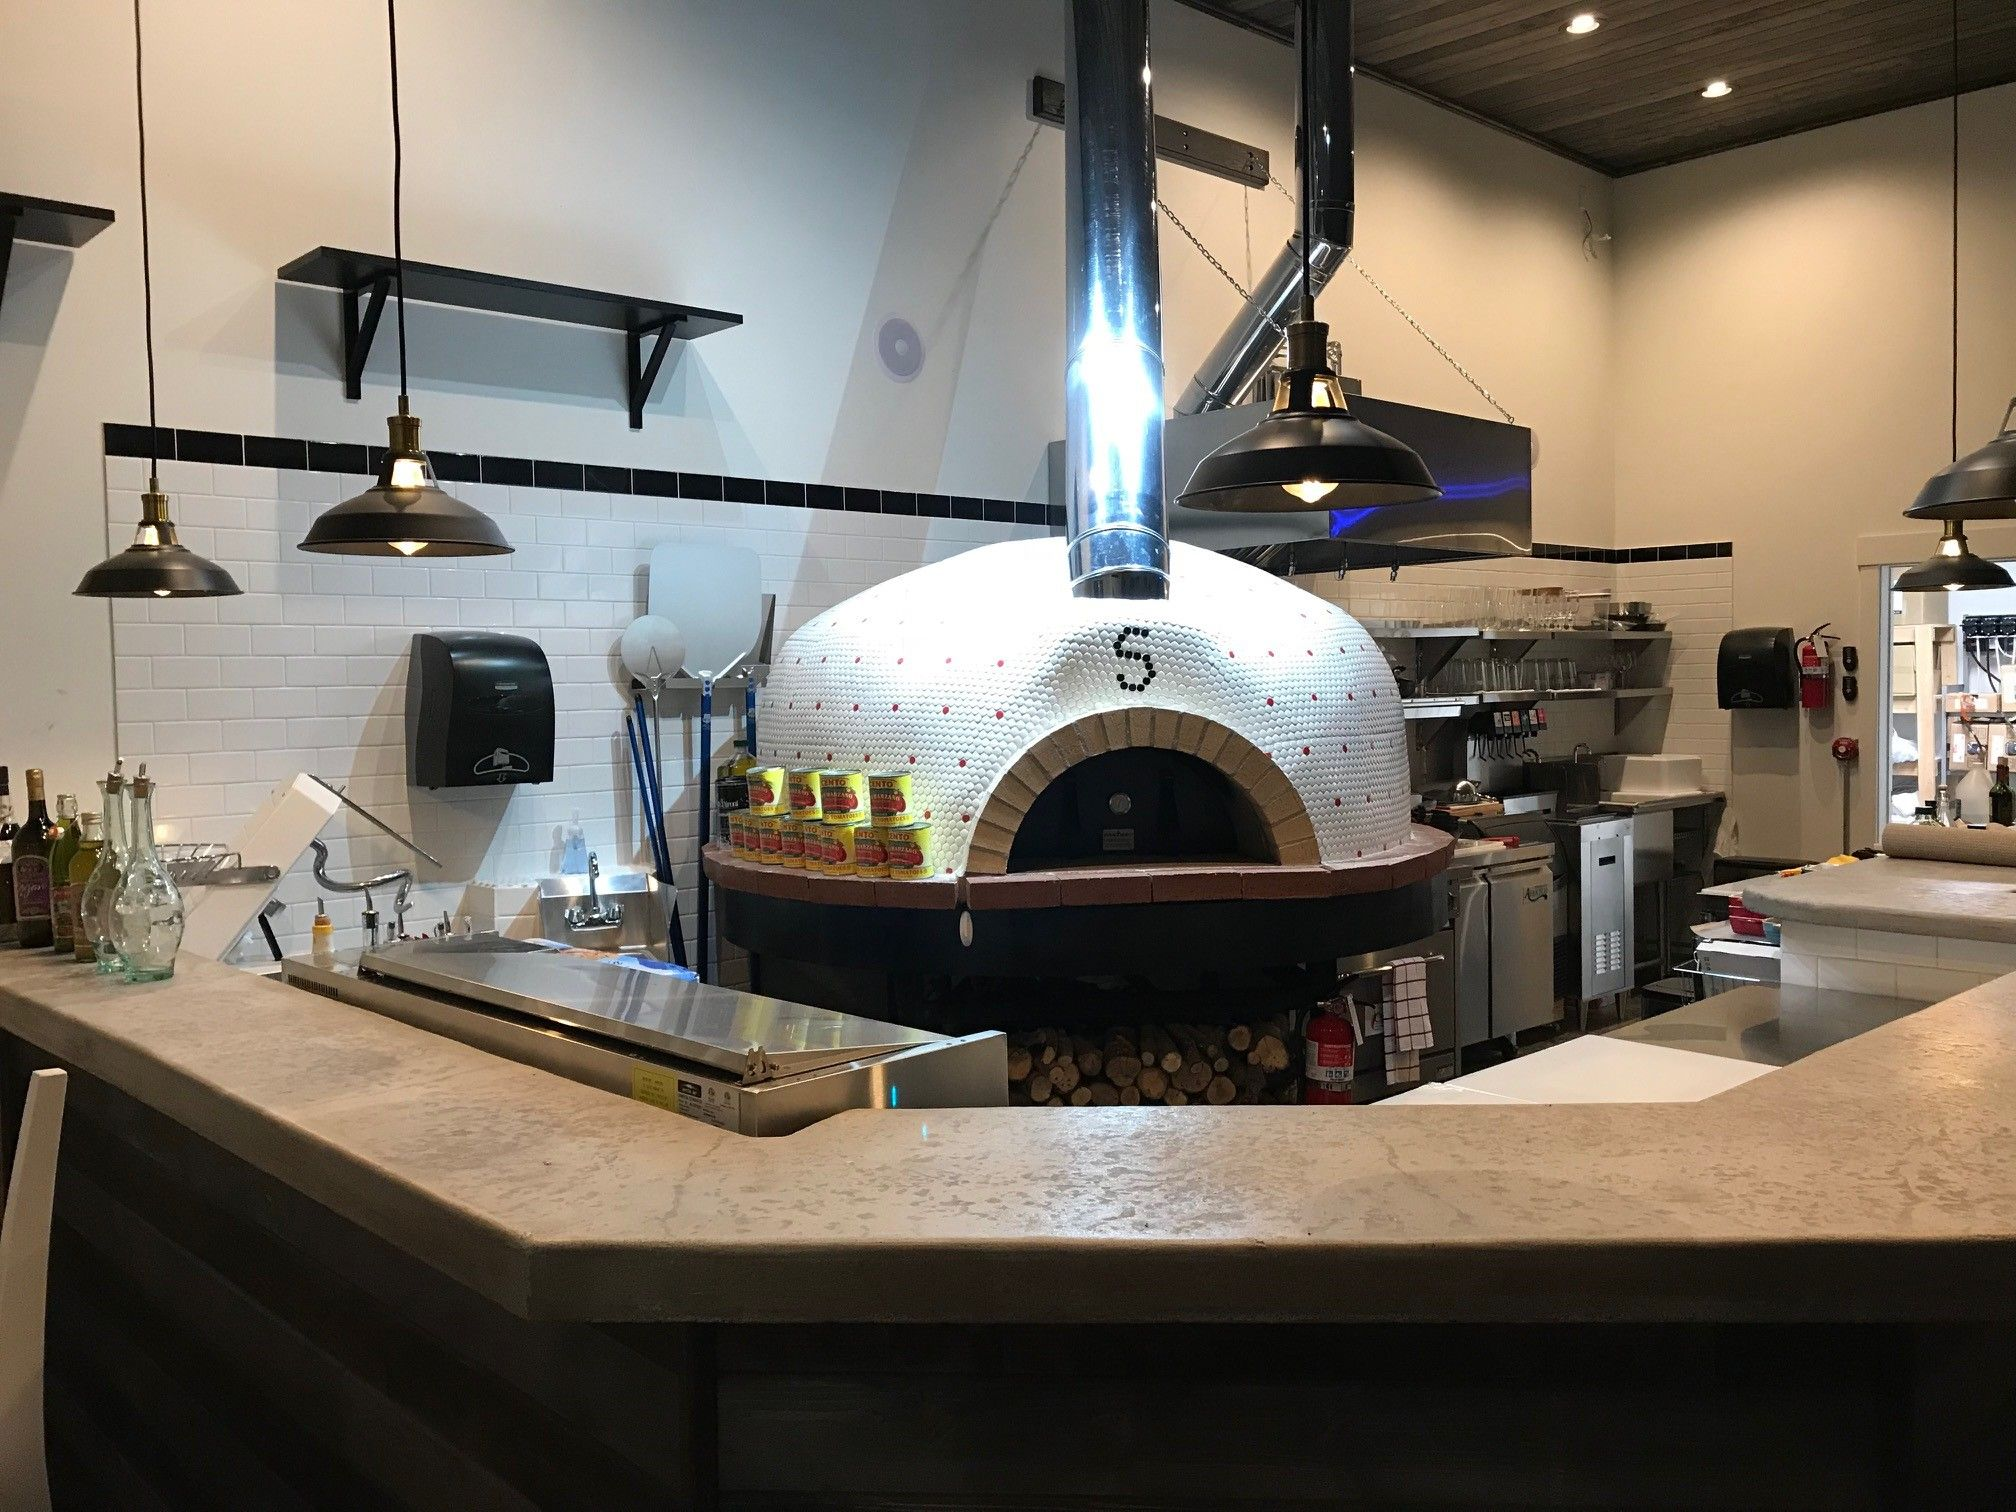 Modena Pizza Oven Commercial Outdoor Pizza Oven Forno Bravo Pizza Oven Restaurant Kitchen Pizza Oven Restaurant